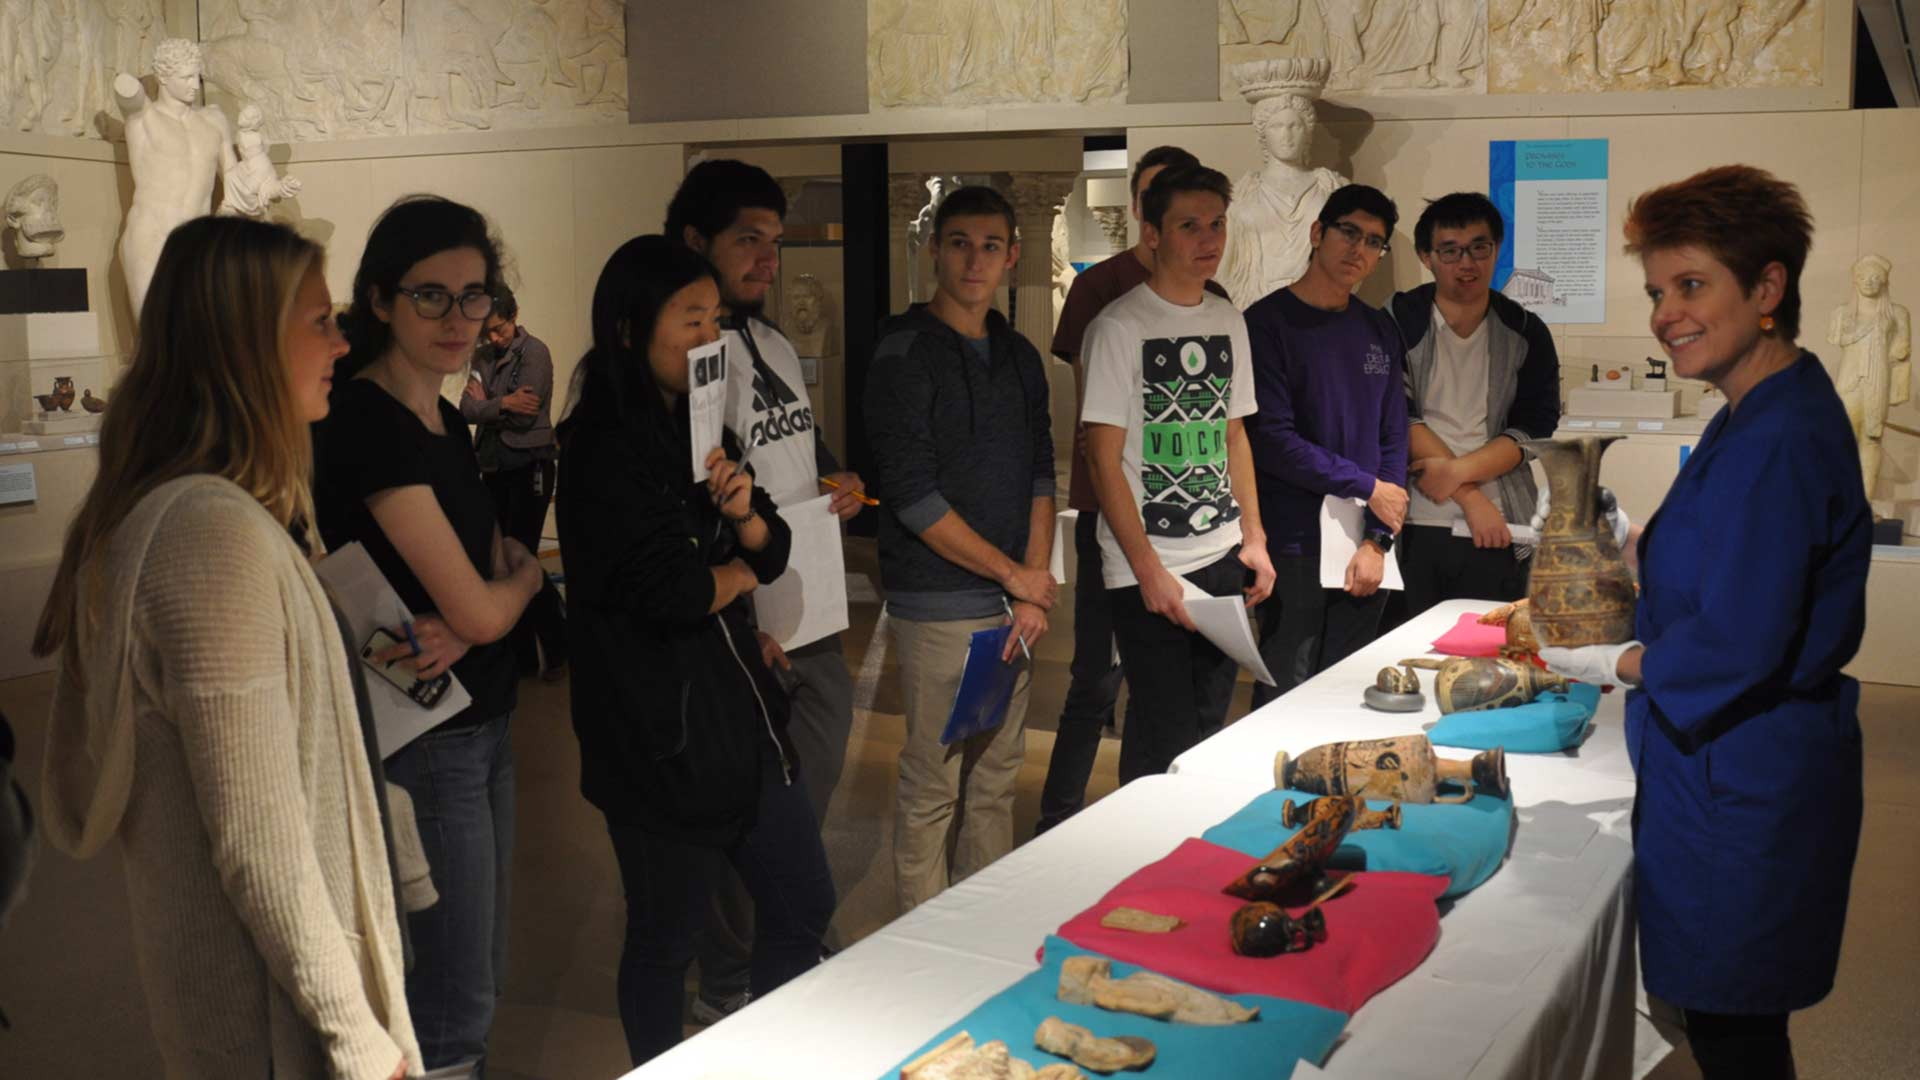 students in Ancient Med gallery reviewing objects led by a facilitator